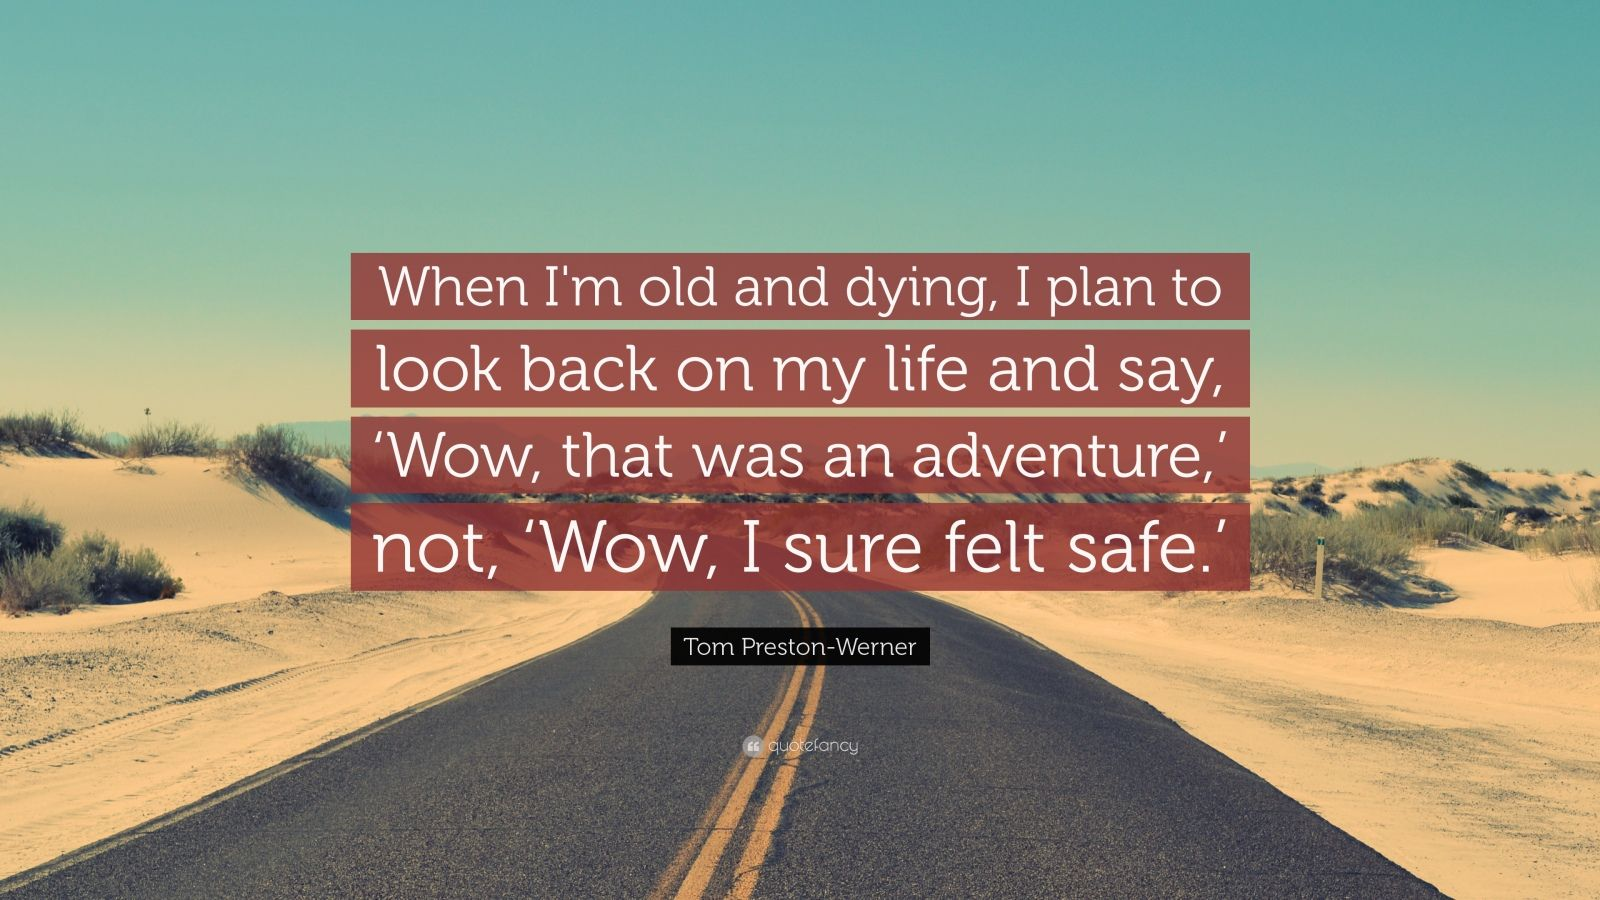 "Tom Preston-Werner Quote: ""When I'm old and dying, I plan to look back on my life and say, 'Wow, that was an adventure,' not, 'Wow, I sure felt safe.'"""